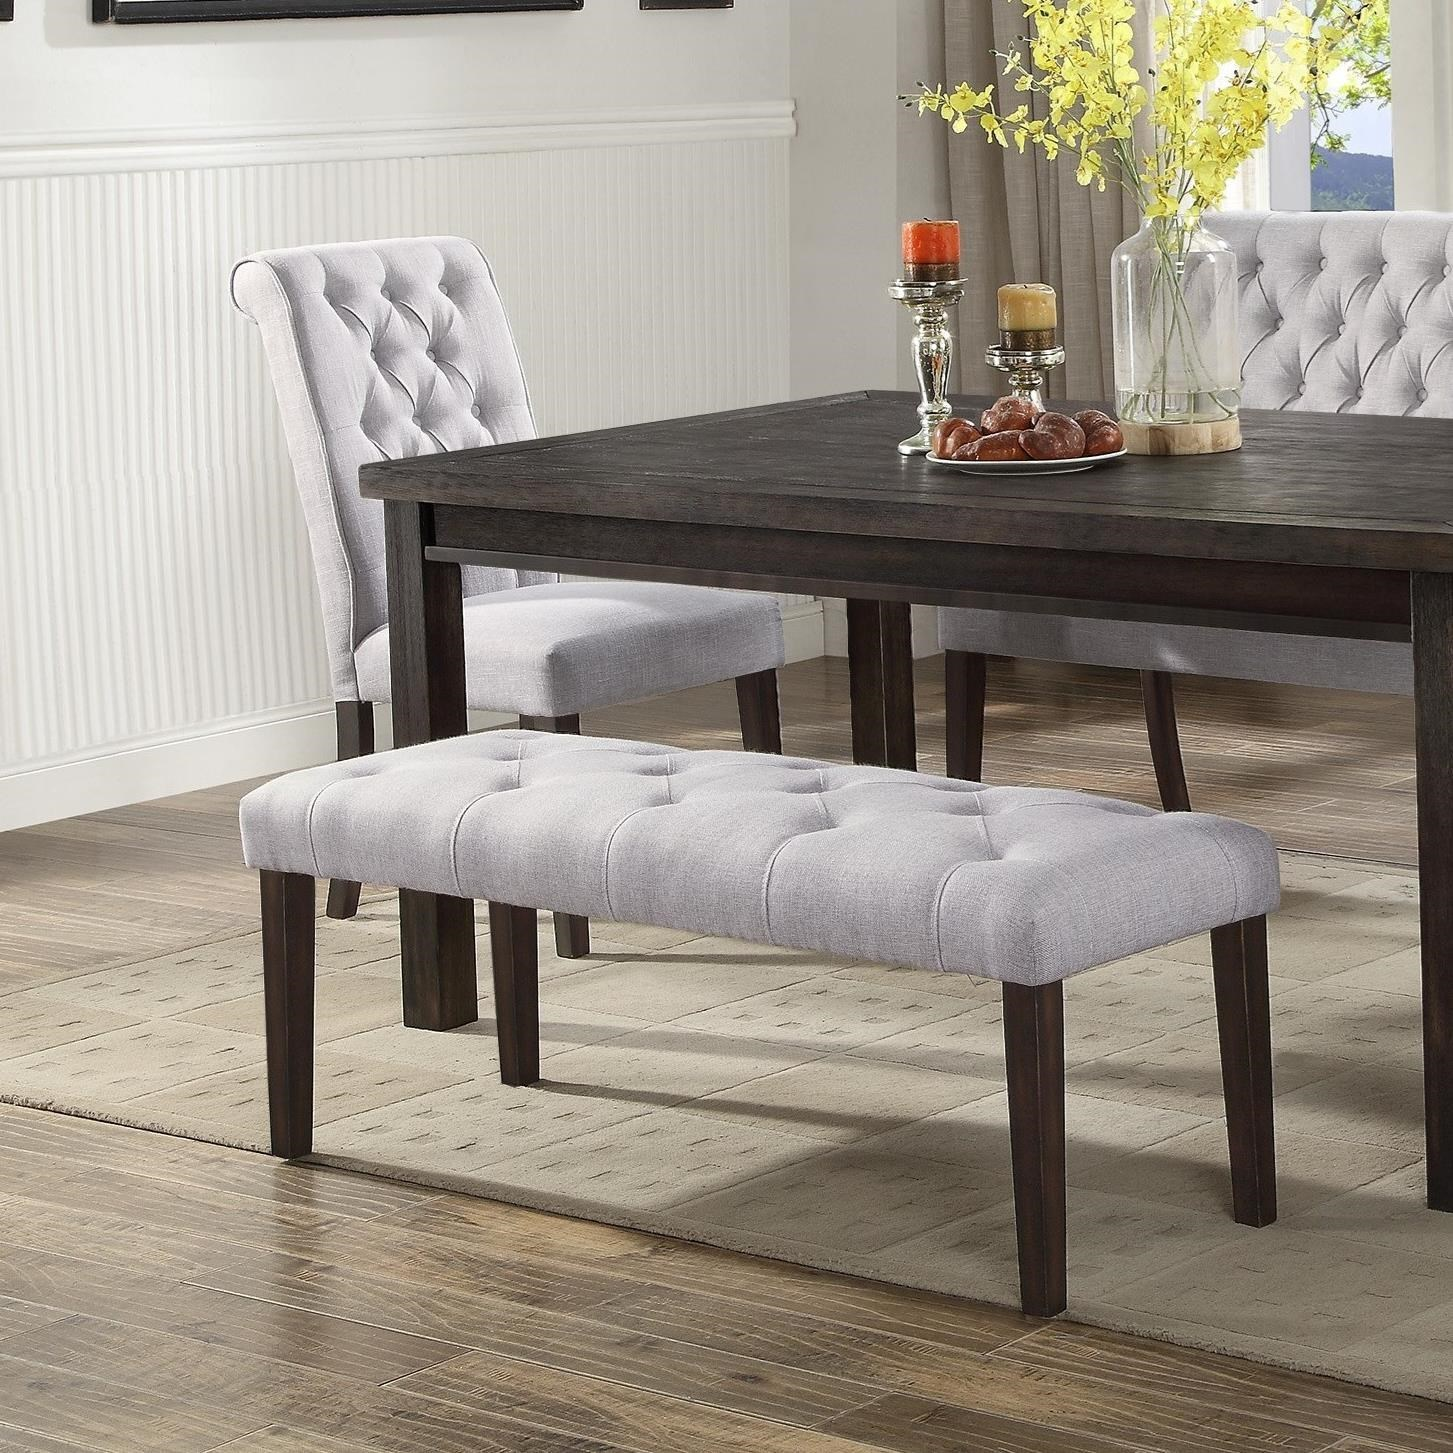 upholstered dining bench rustic crown mark palmer diningdining bench dining upholstered with button